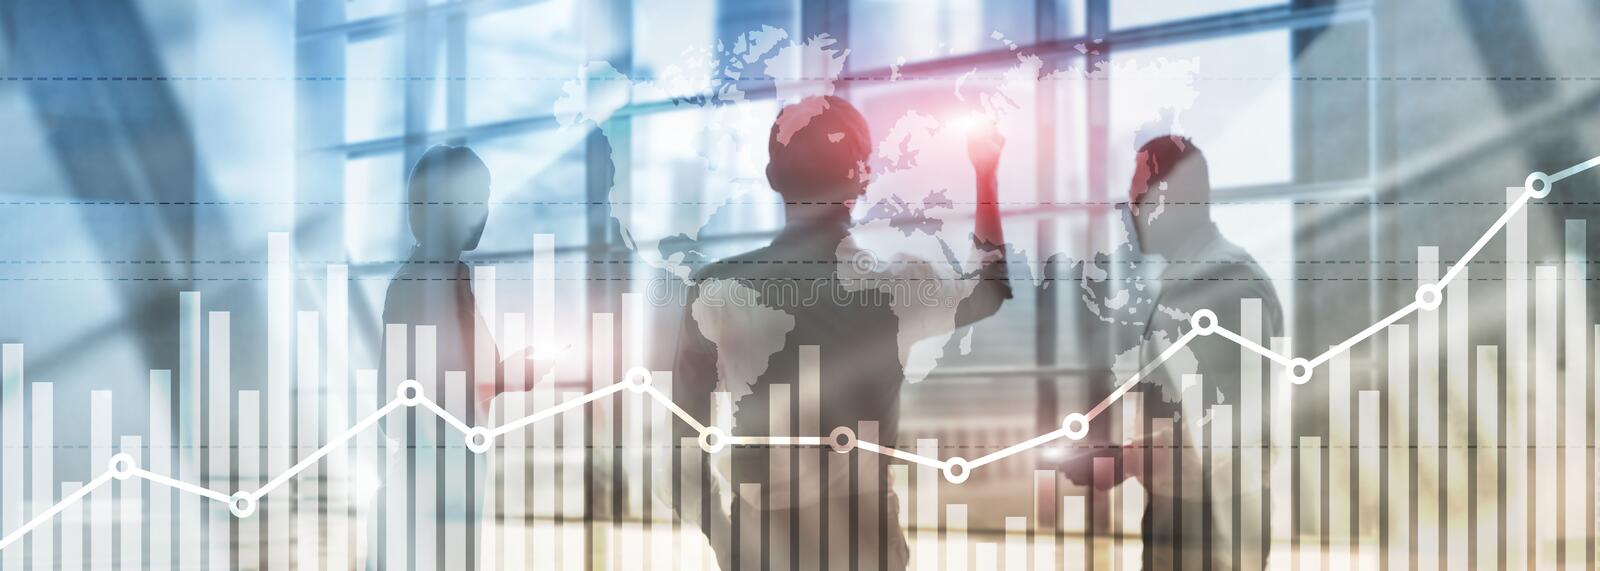 Business finance growth graph chart analysing diagram trading and forex exchange concept double exposure mixed media background royalty free illustration